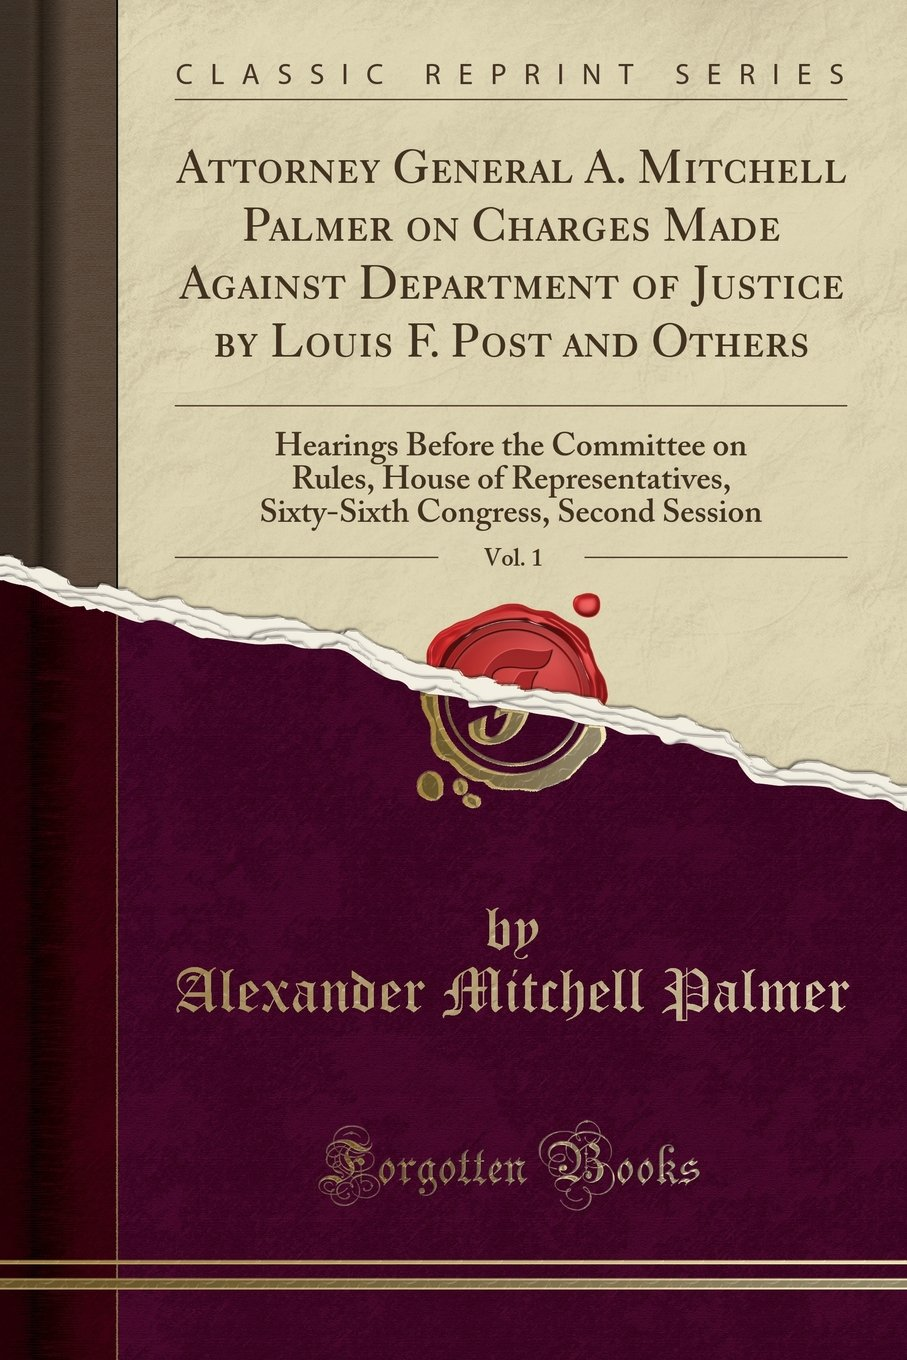 Attorney General A. Mitchell Palmer on Charges Made Against Department of Justice by Louis F. Post and Others, Vol. 1: Hearings Before the Committee ... Congress, Second Session (Classic Reprint) PDF